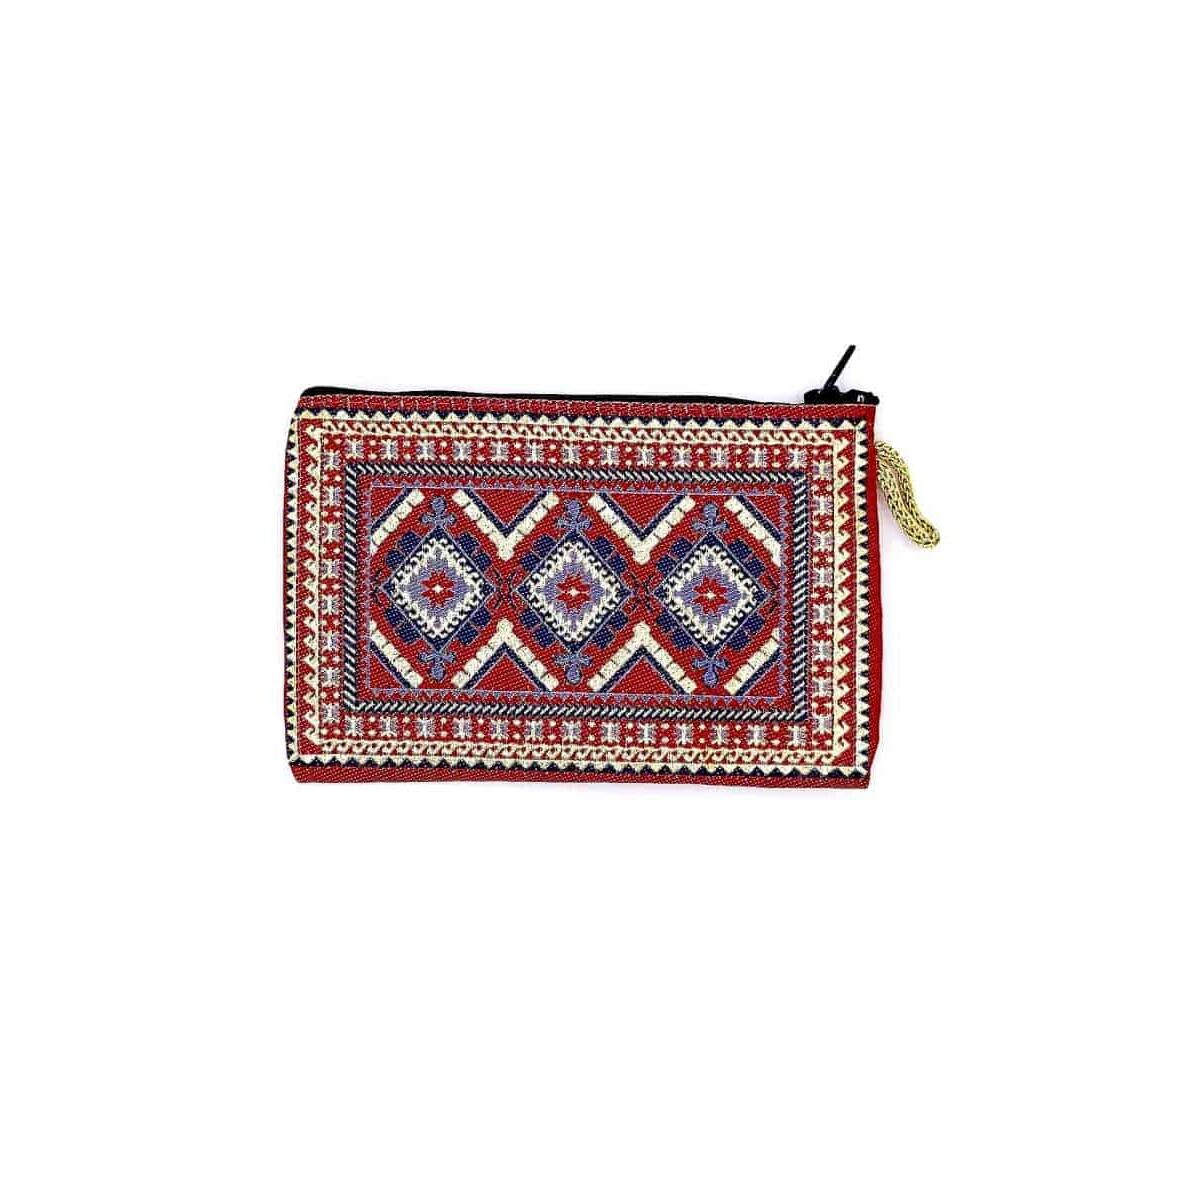 Turkish Hand Bag Carpet Design